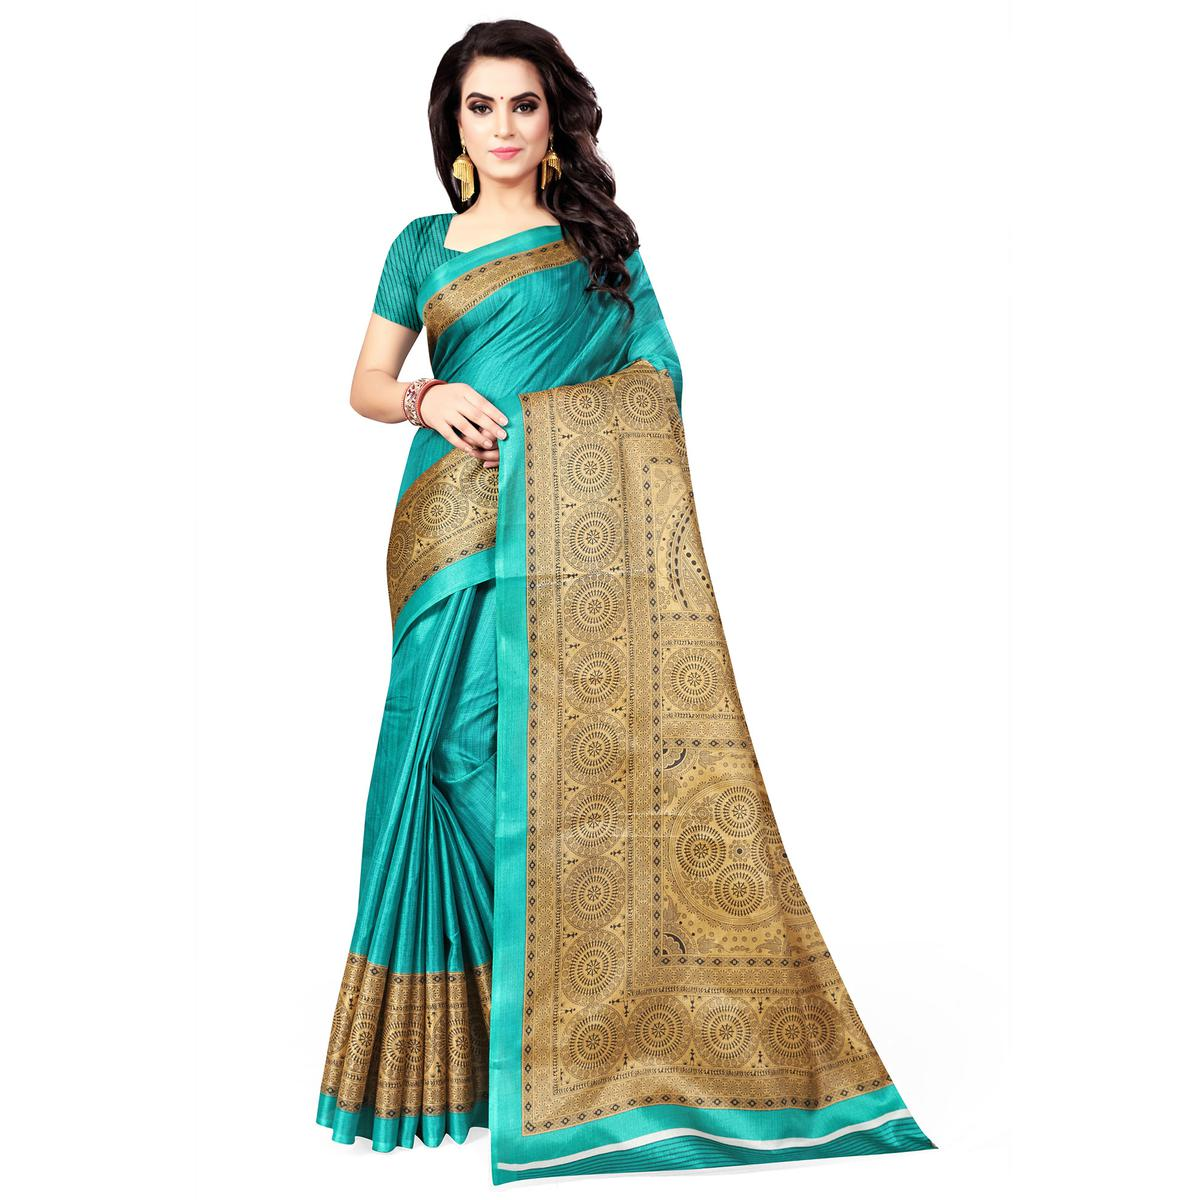 Stunning Turquoise Green Colored Casual Wear Printed Art Silk Saree